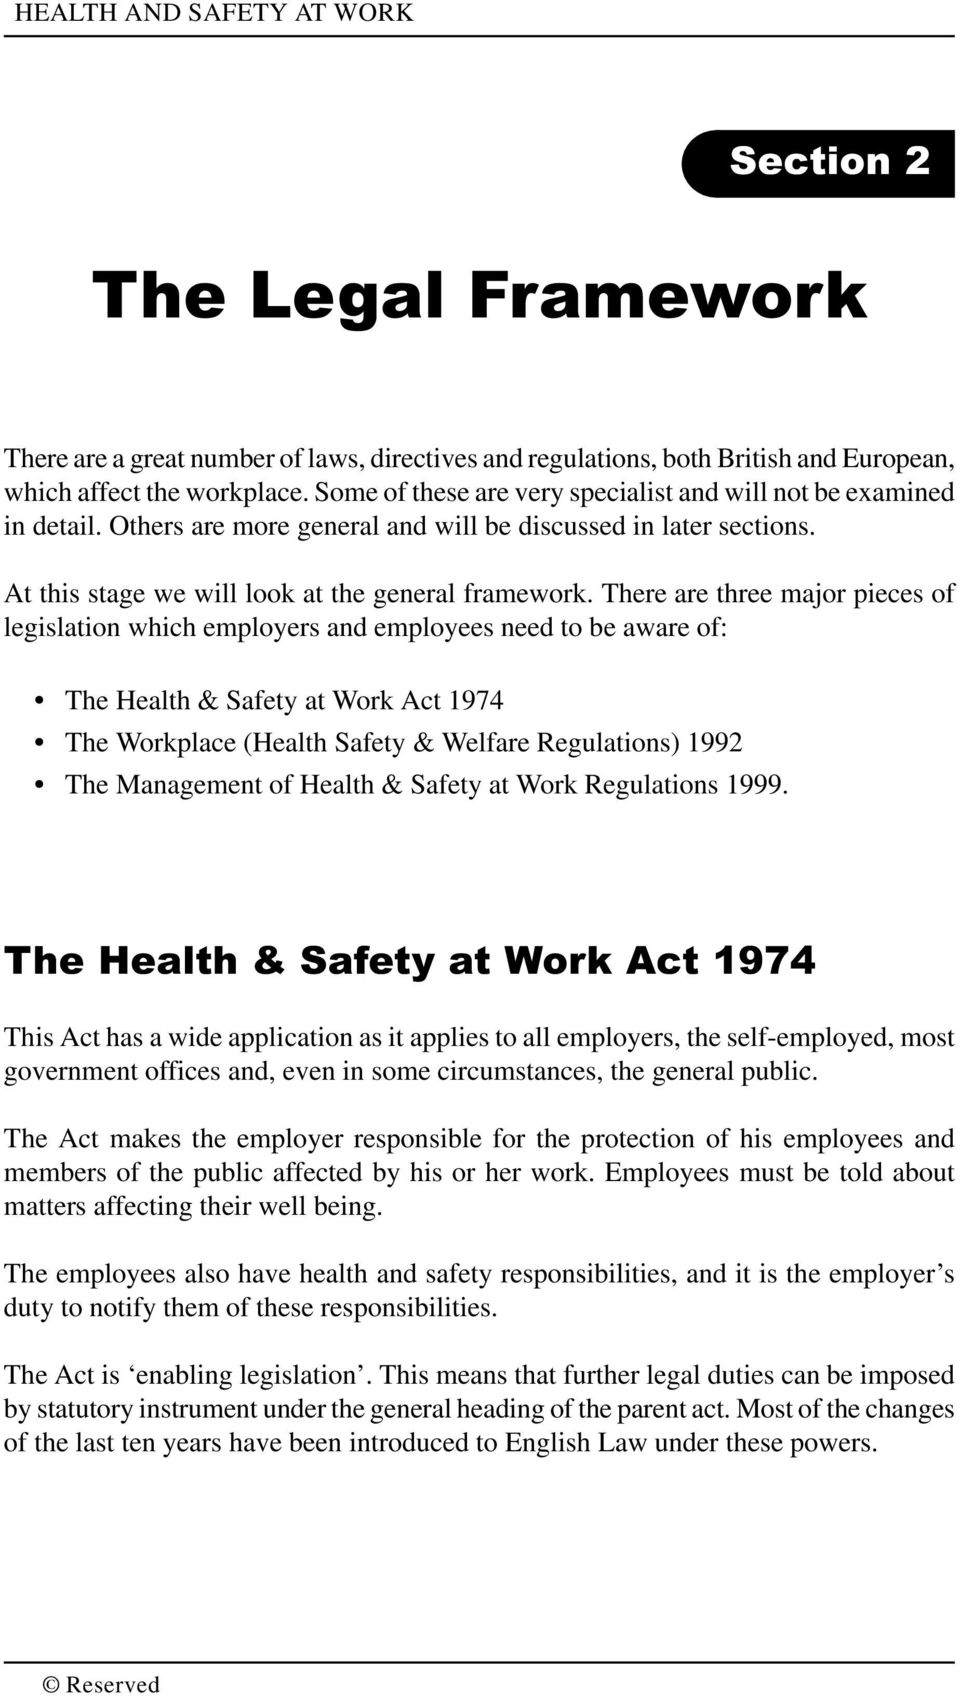 There are three major pieces of legislation which employers and employees need to be aware of: The Health & Safety at Work Act 1974 The Workplace (Health Safety & Welfare Regulations) 1992 The